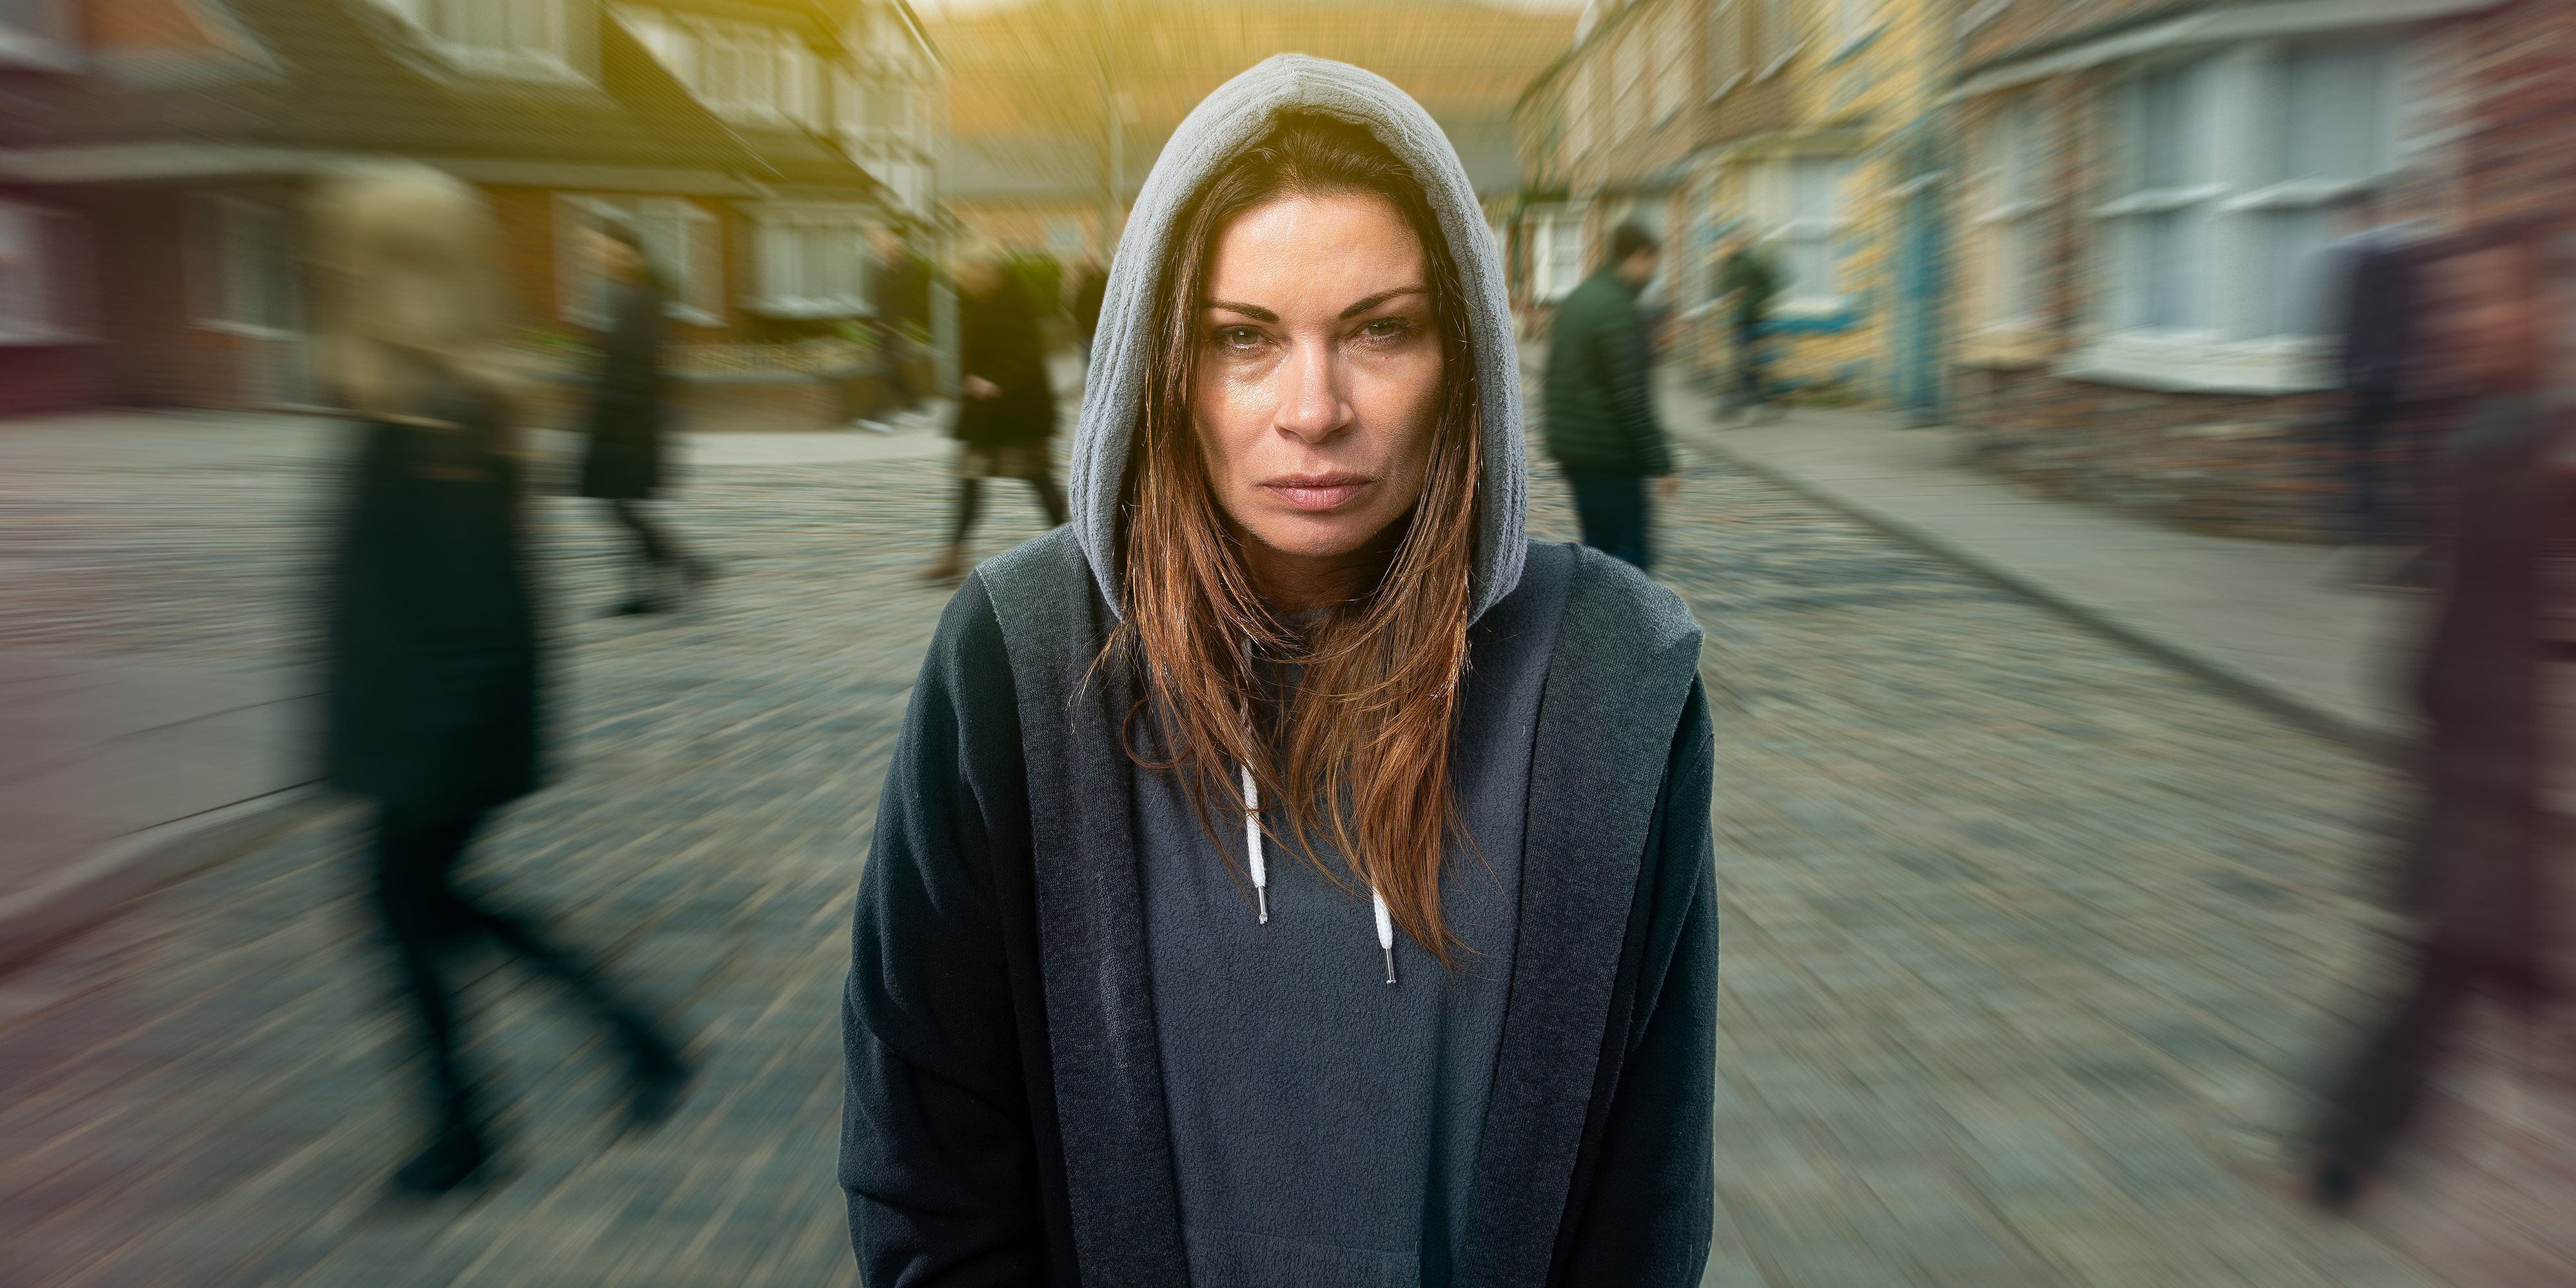 Coronation Street SPOILER: Carla visited by ghosts of Aidan, Hayley and Rana